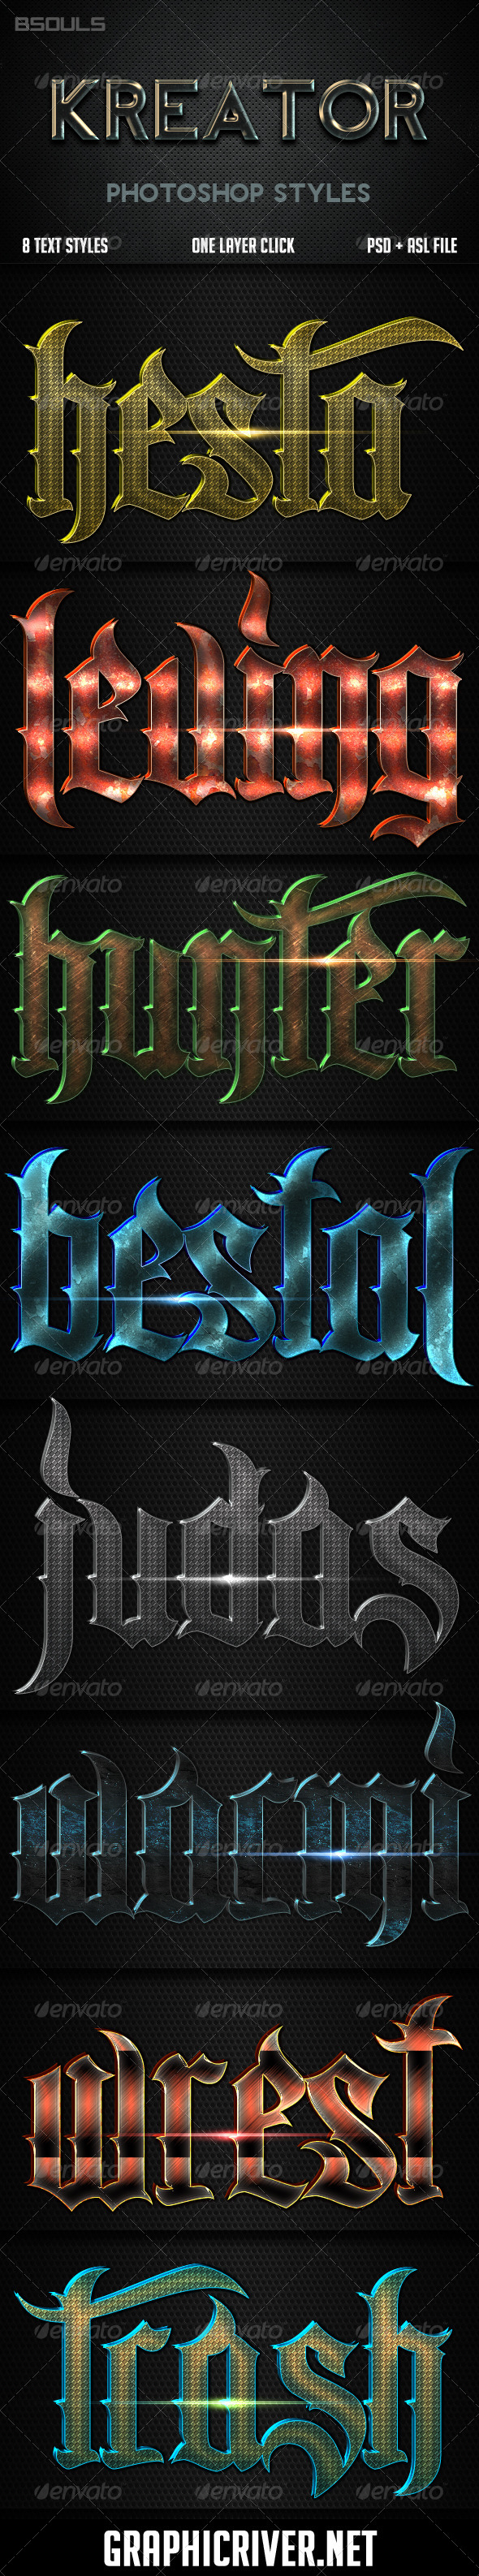 GraphicRiver Kreator Photoshop Styles 6295507